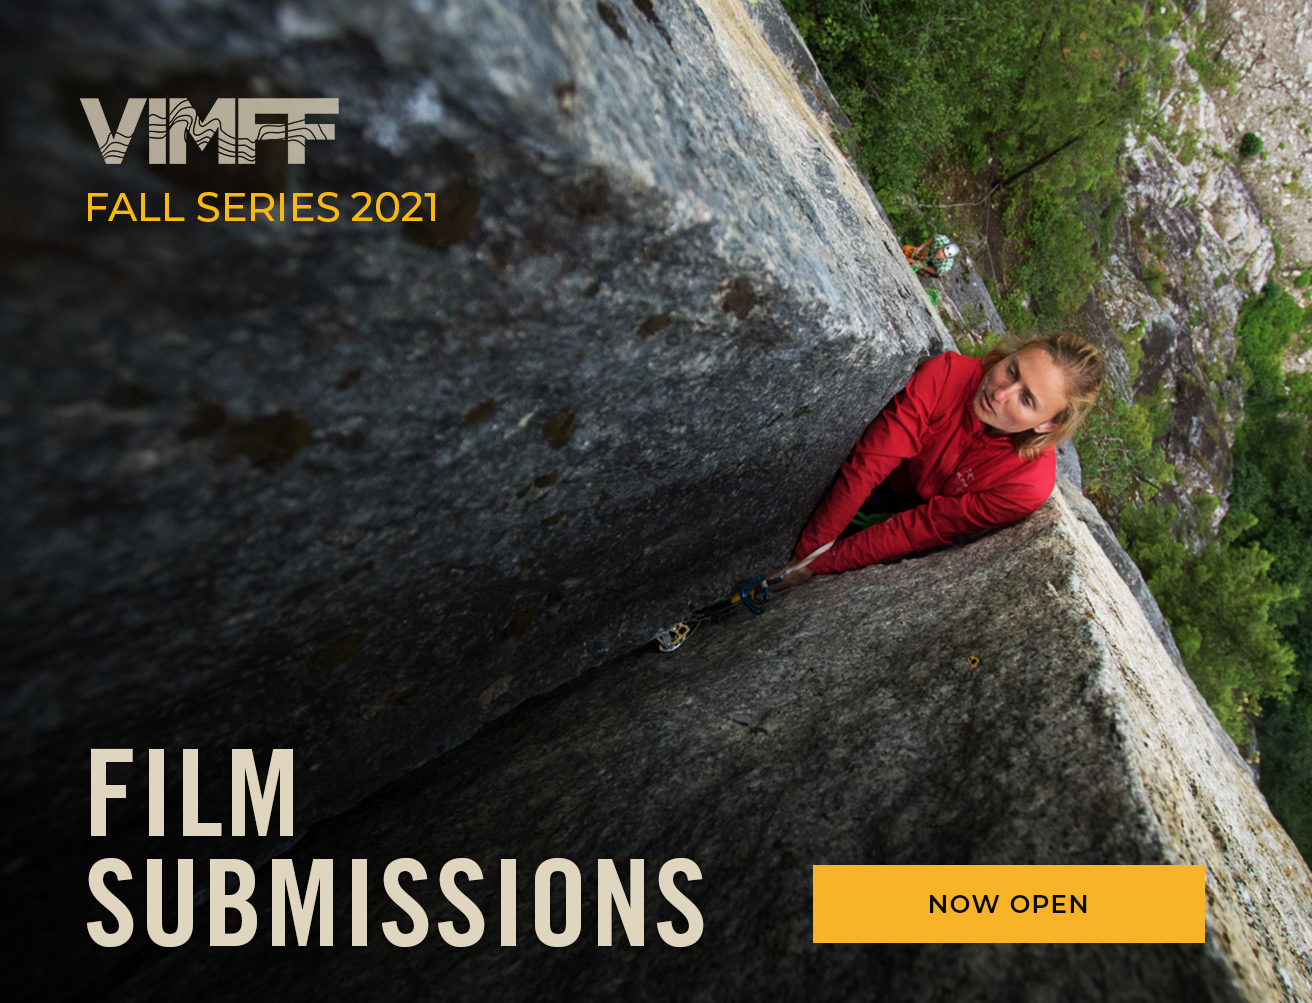 VIMFF fall series film submissions home cta